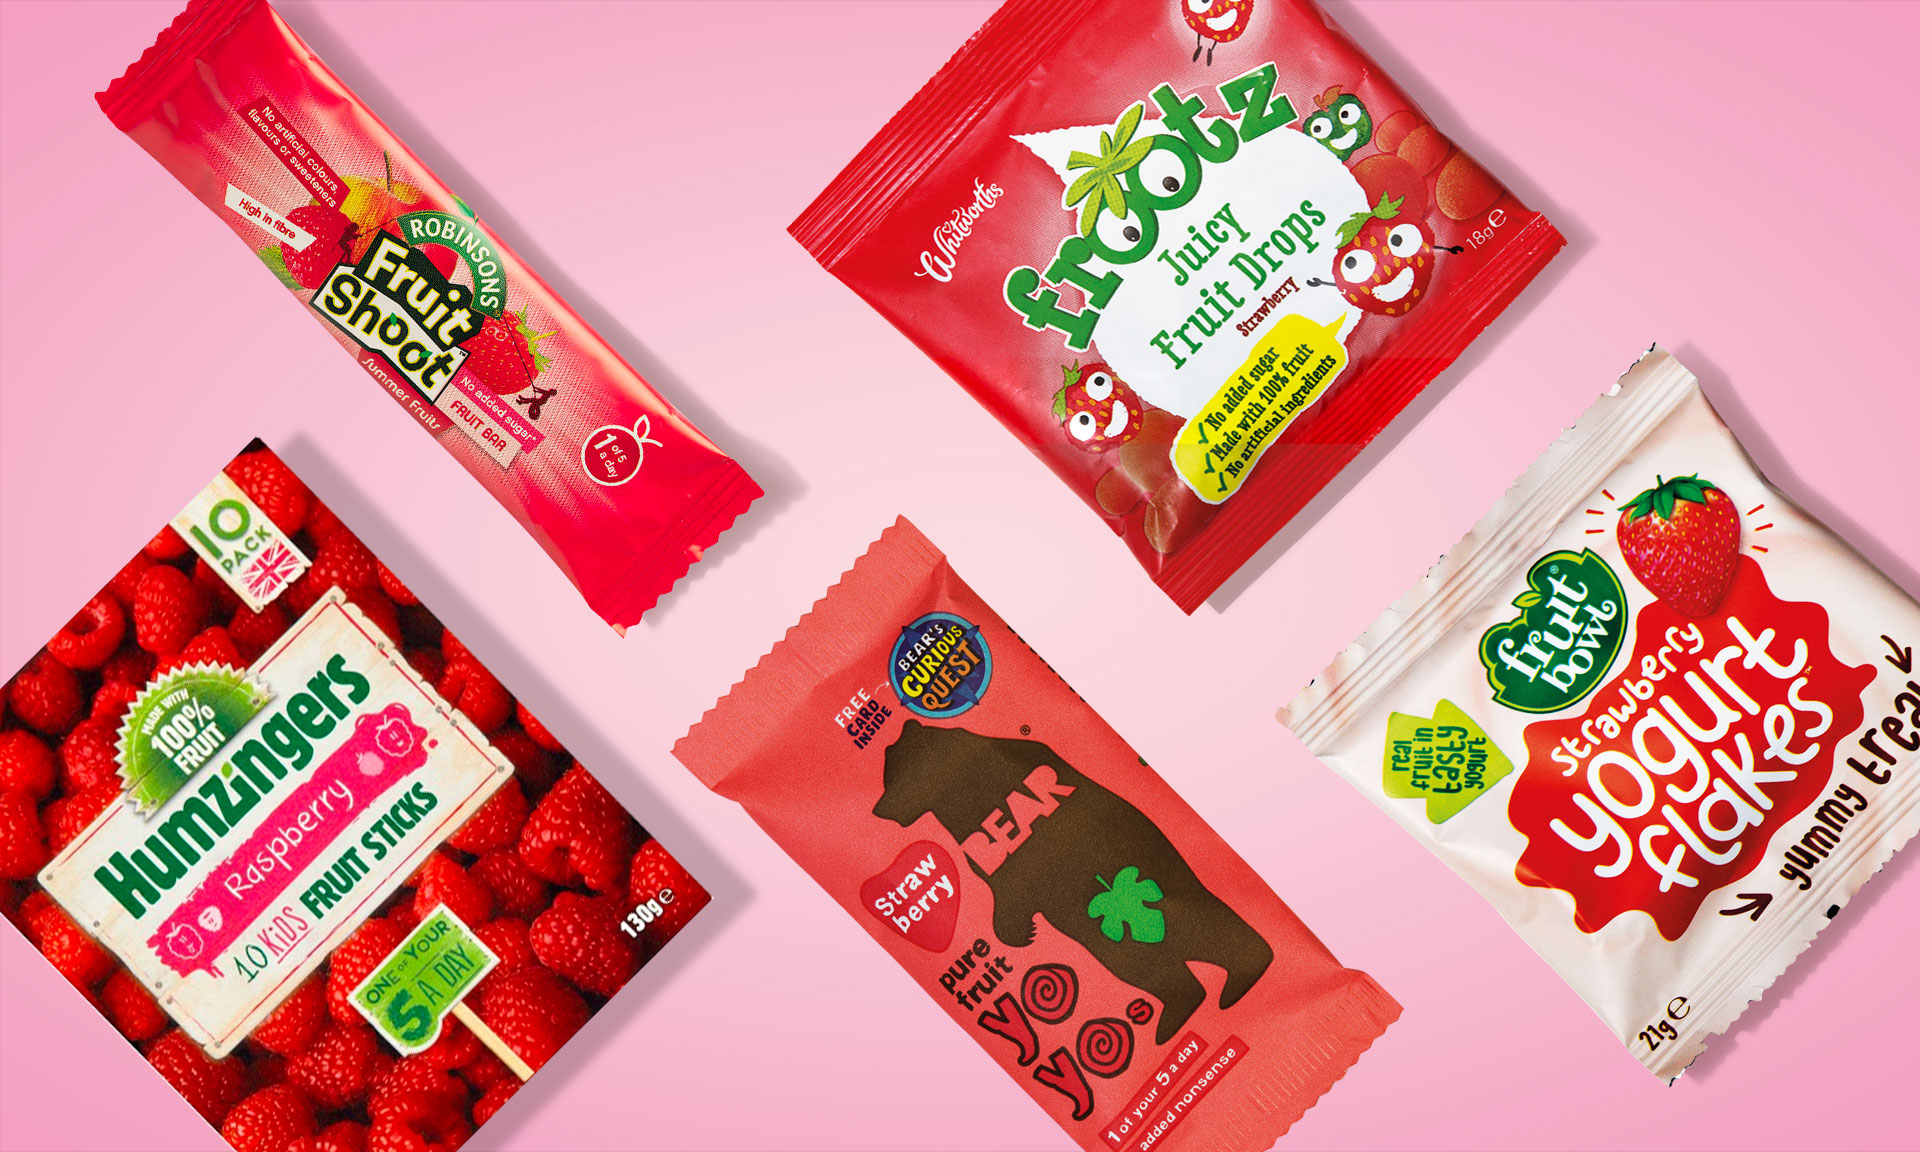 'Healthy' fruit snacks that contain as much sugar as some sweets